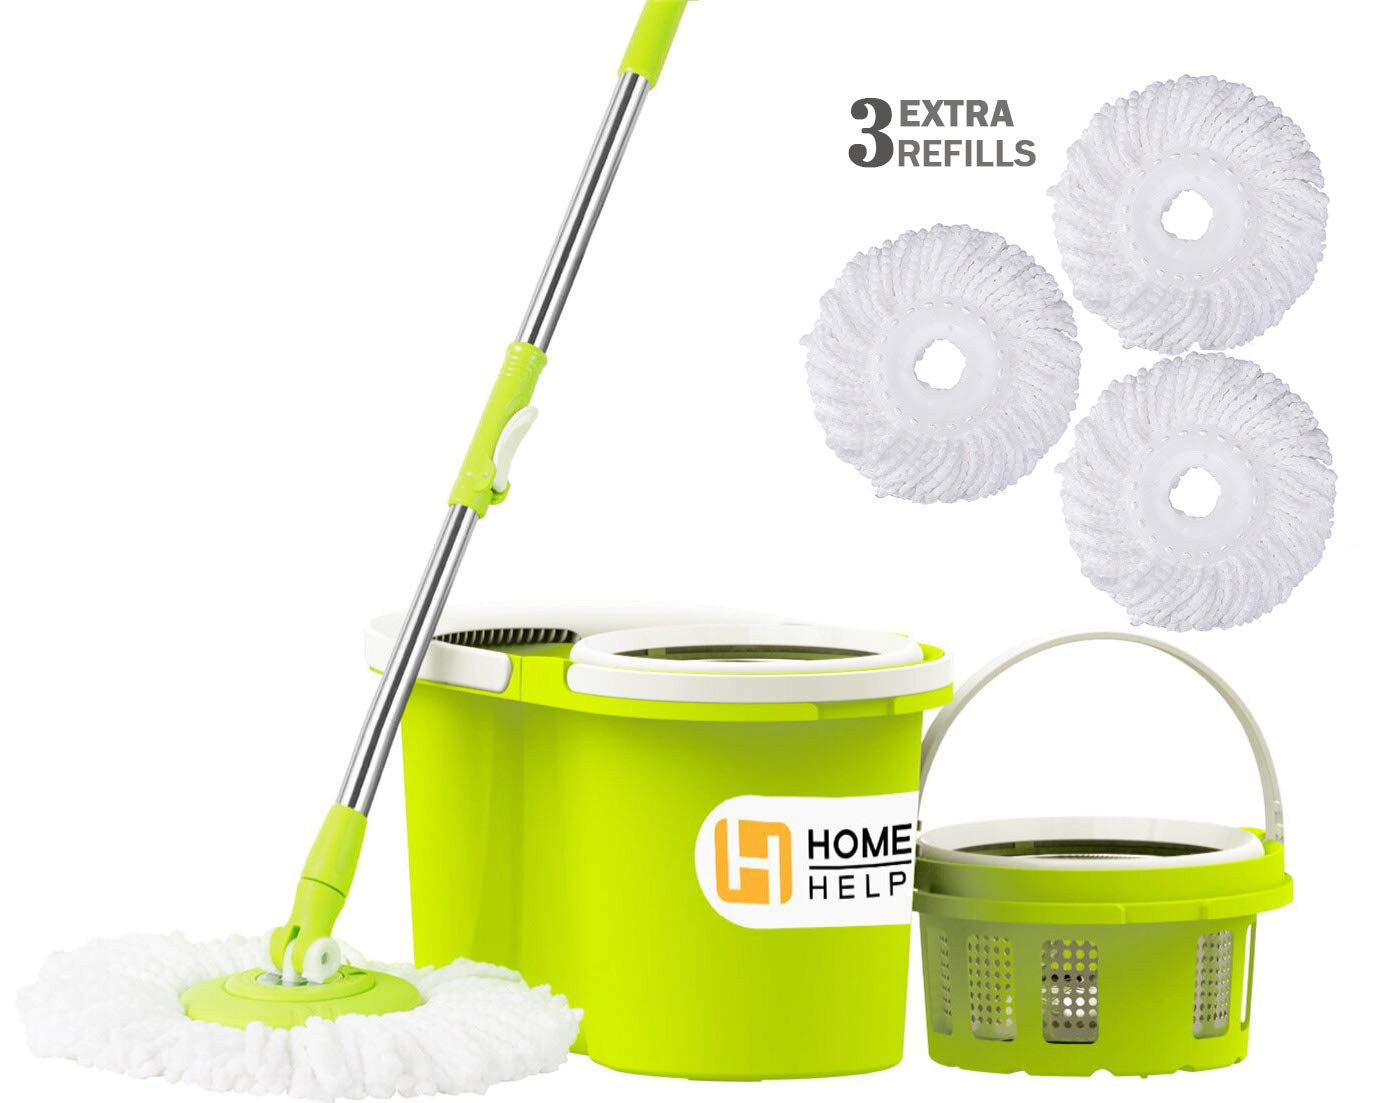 HomeHelper Microfiber Spin Mop,Bucket Floor Cleaning System-With 3 Microfiber Mop Heads-1-Year Guarantee